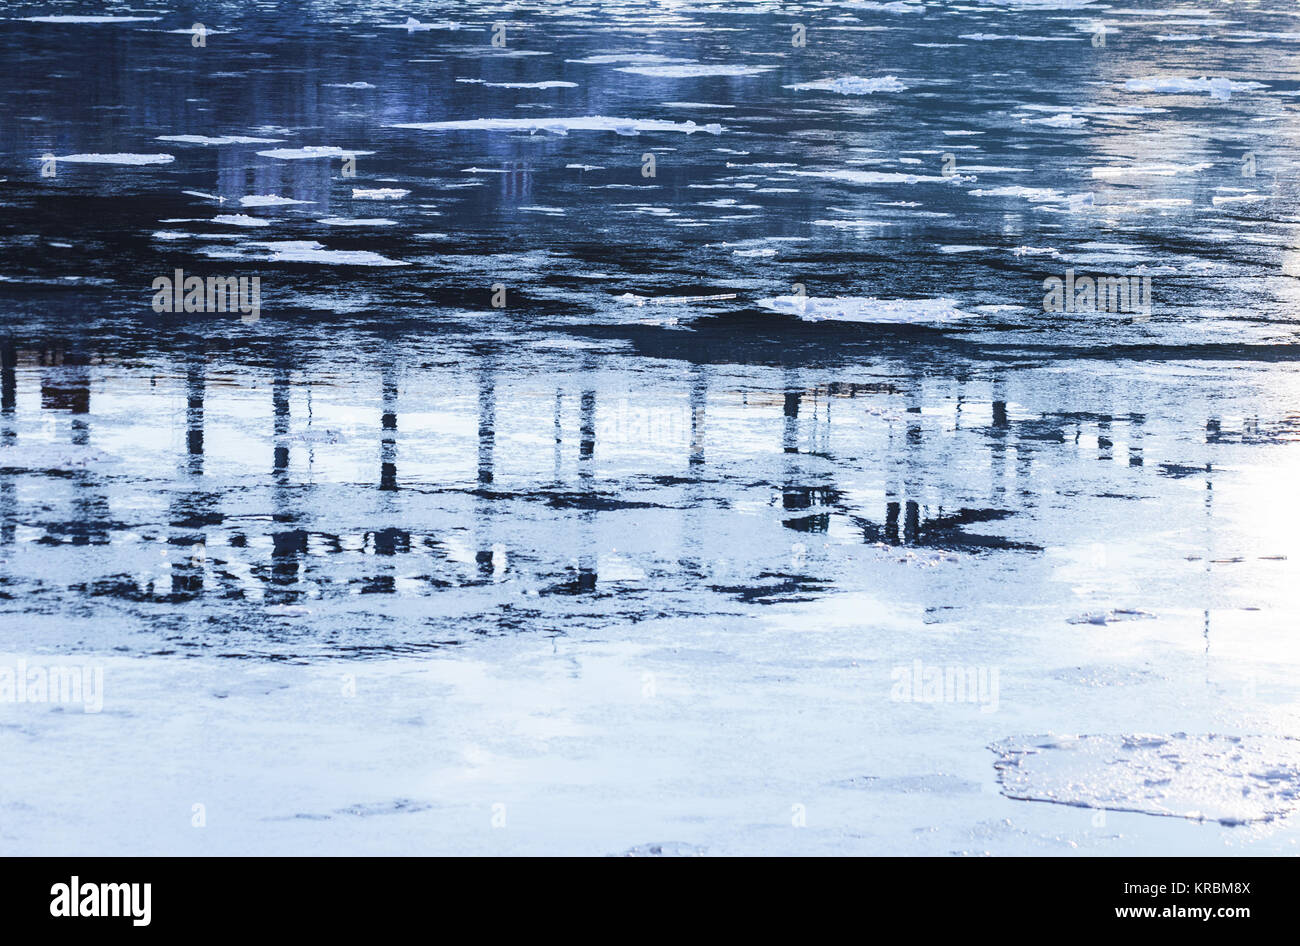 Abstract reflection in quiet water winter at day - Stock Image